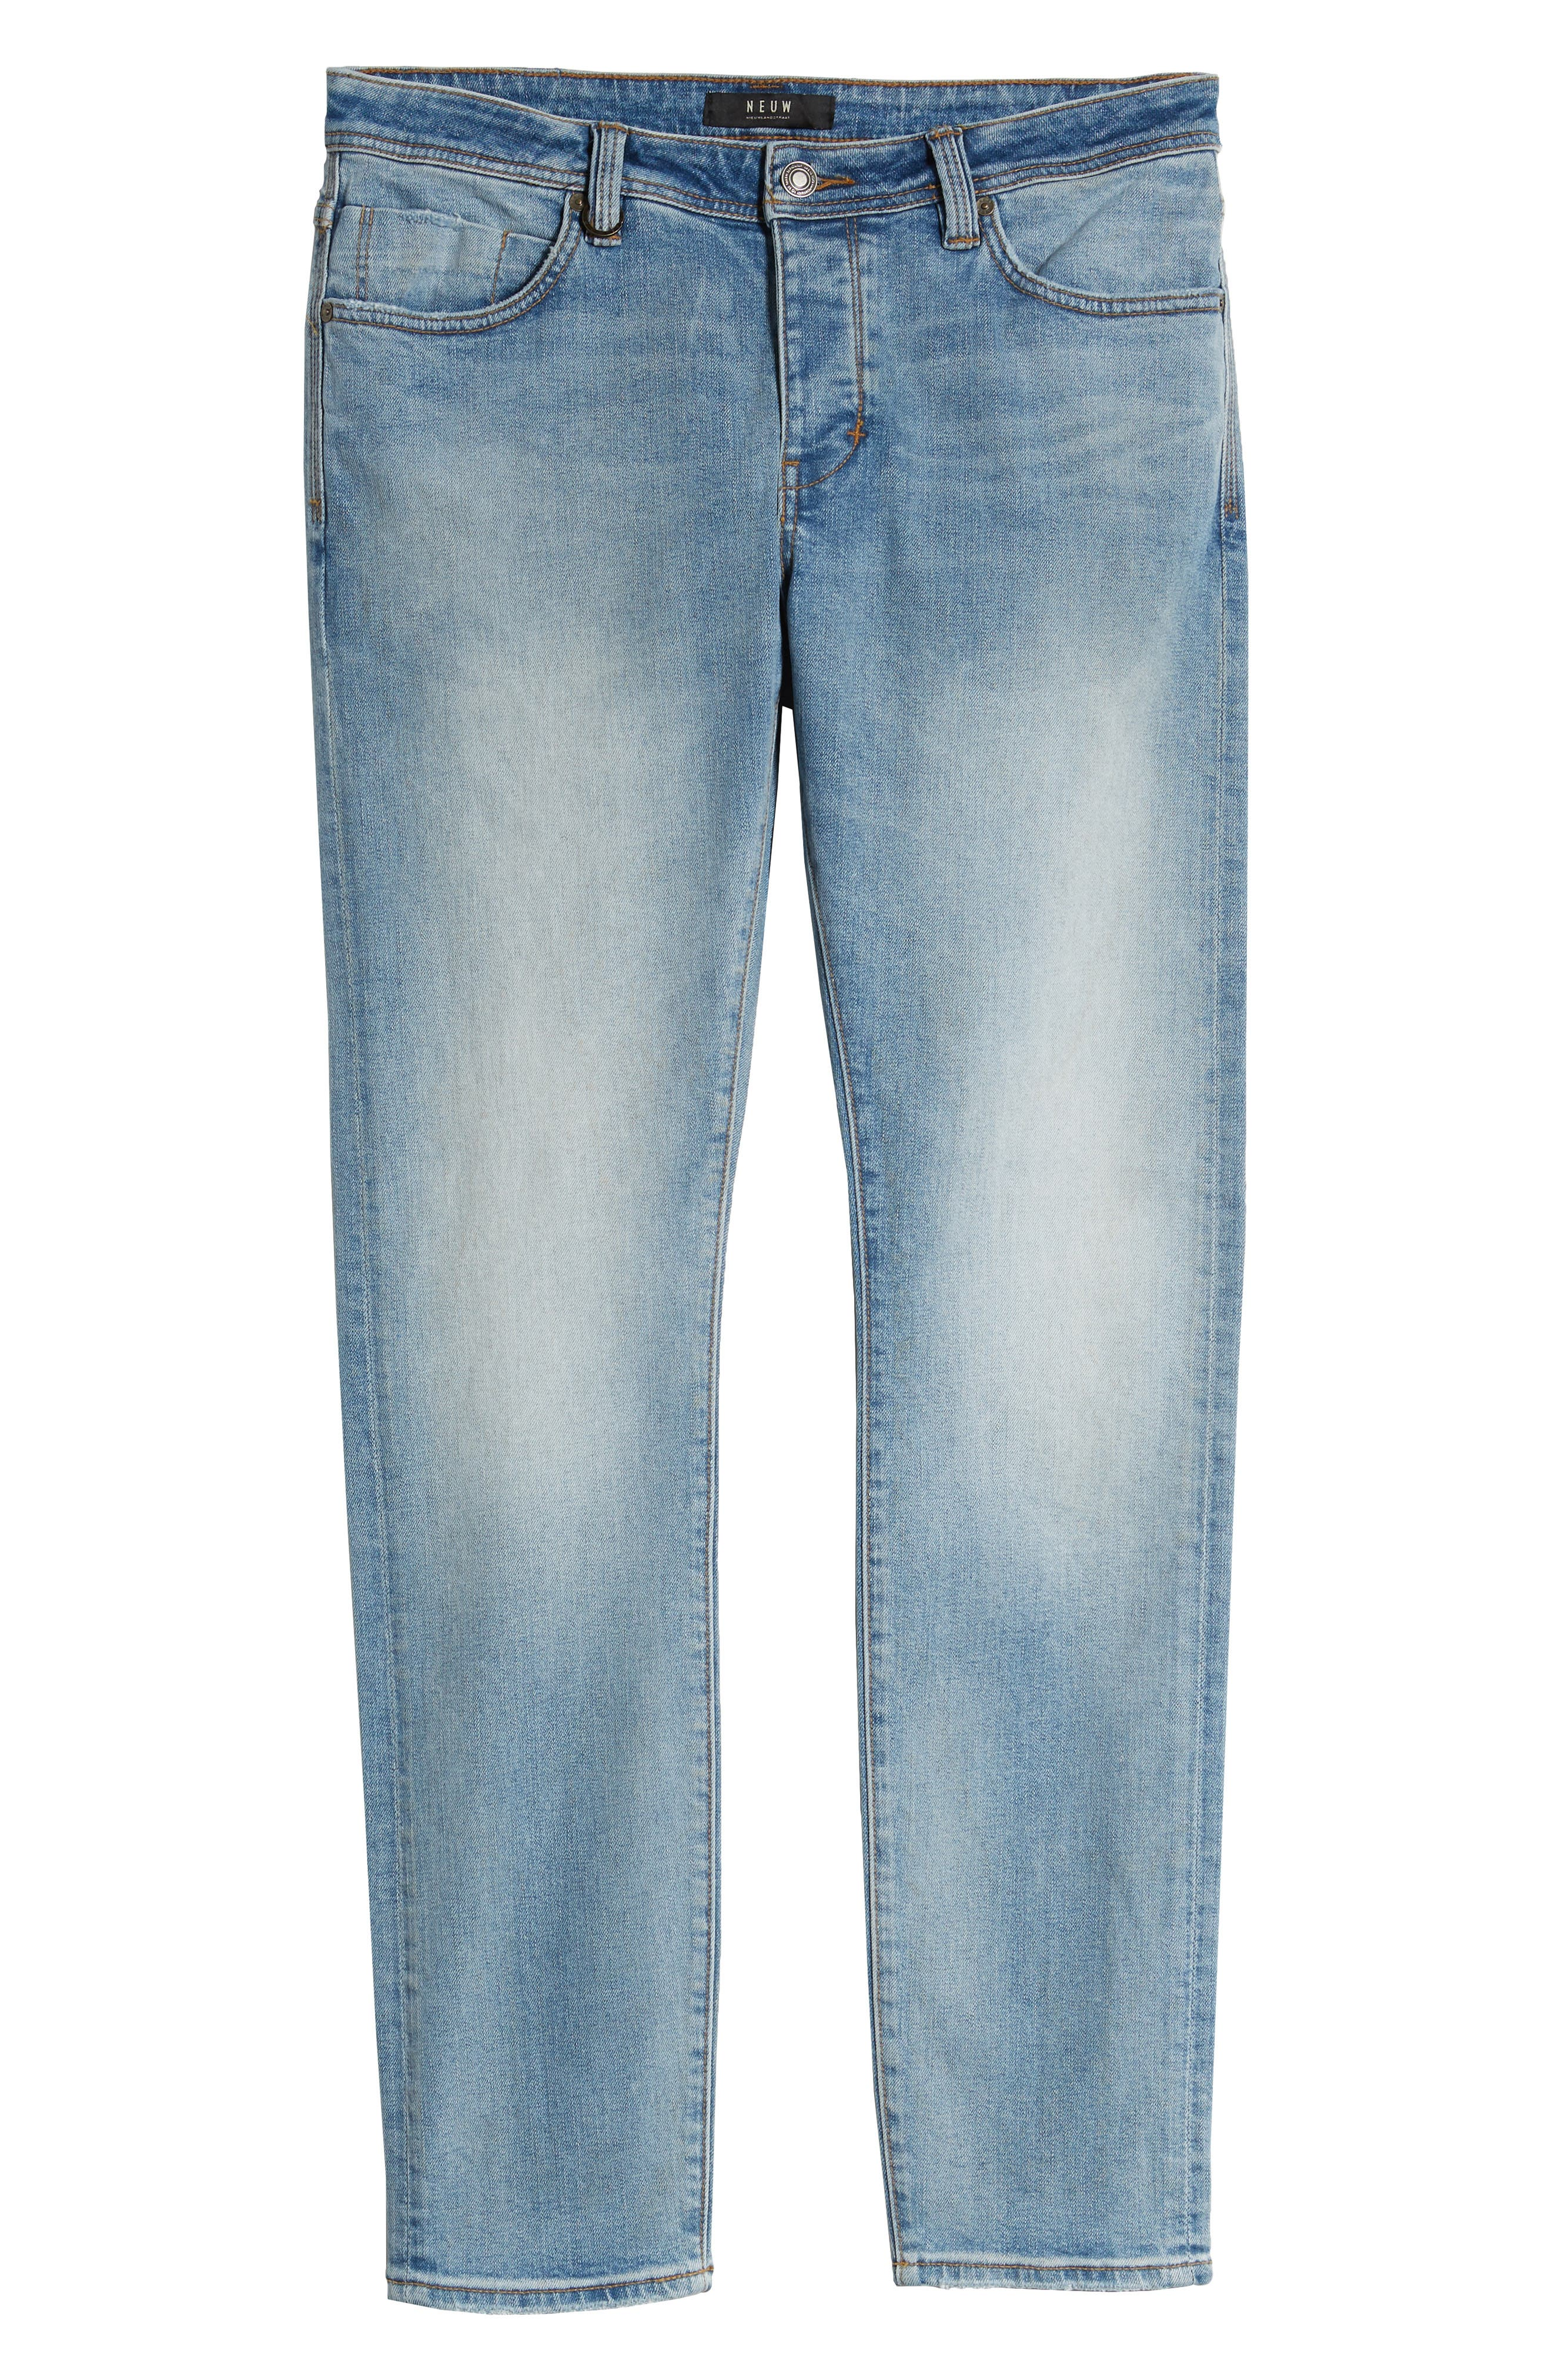 Iggy Skinny Fit Jeans,                             Alternate thumbnail 4, color,                             ATOMIC AIRWASH